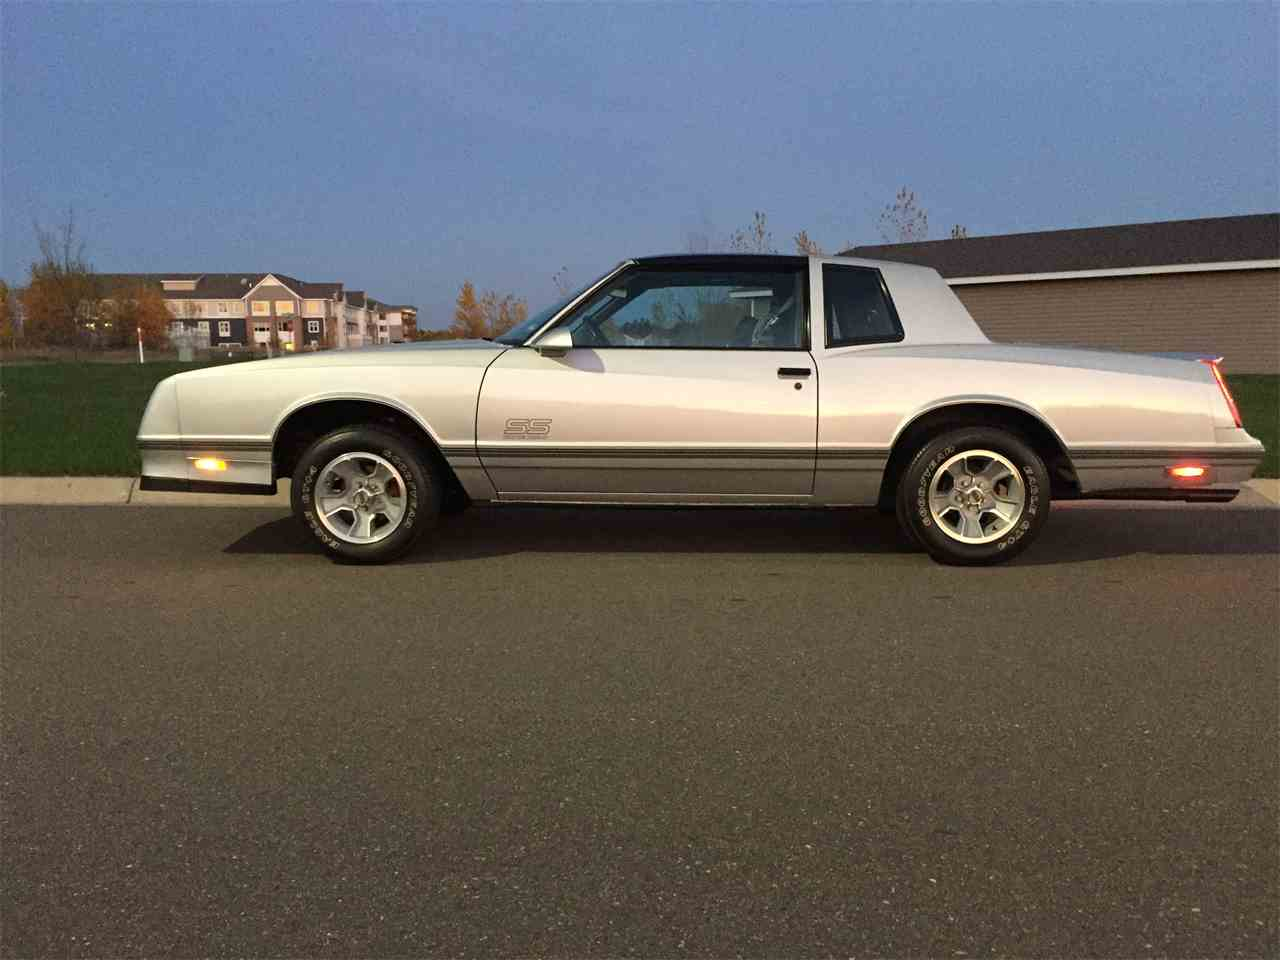 All Chevy 1988 chevrolet monte carlo ss for sale : 1988 Chevrolet Monte Carlo SS for Sale | ClassicCars.com | CC-962340